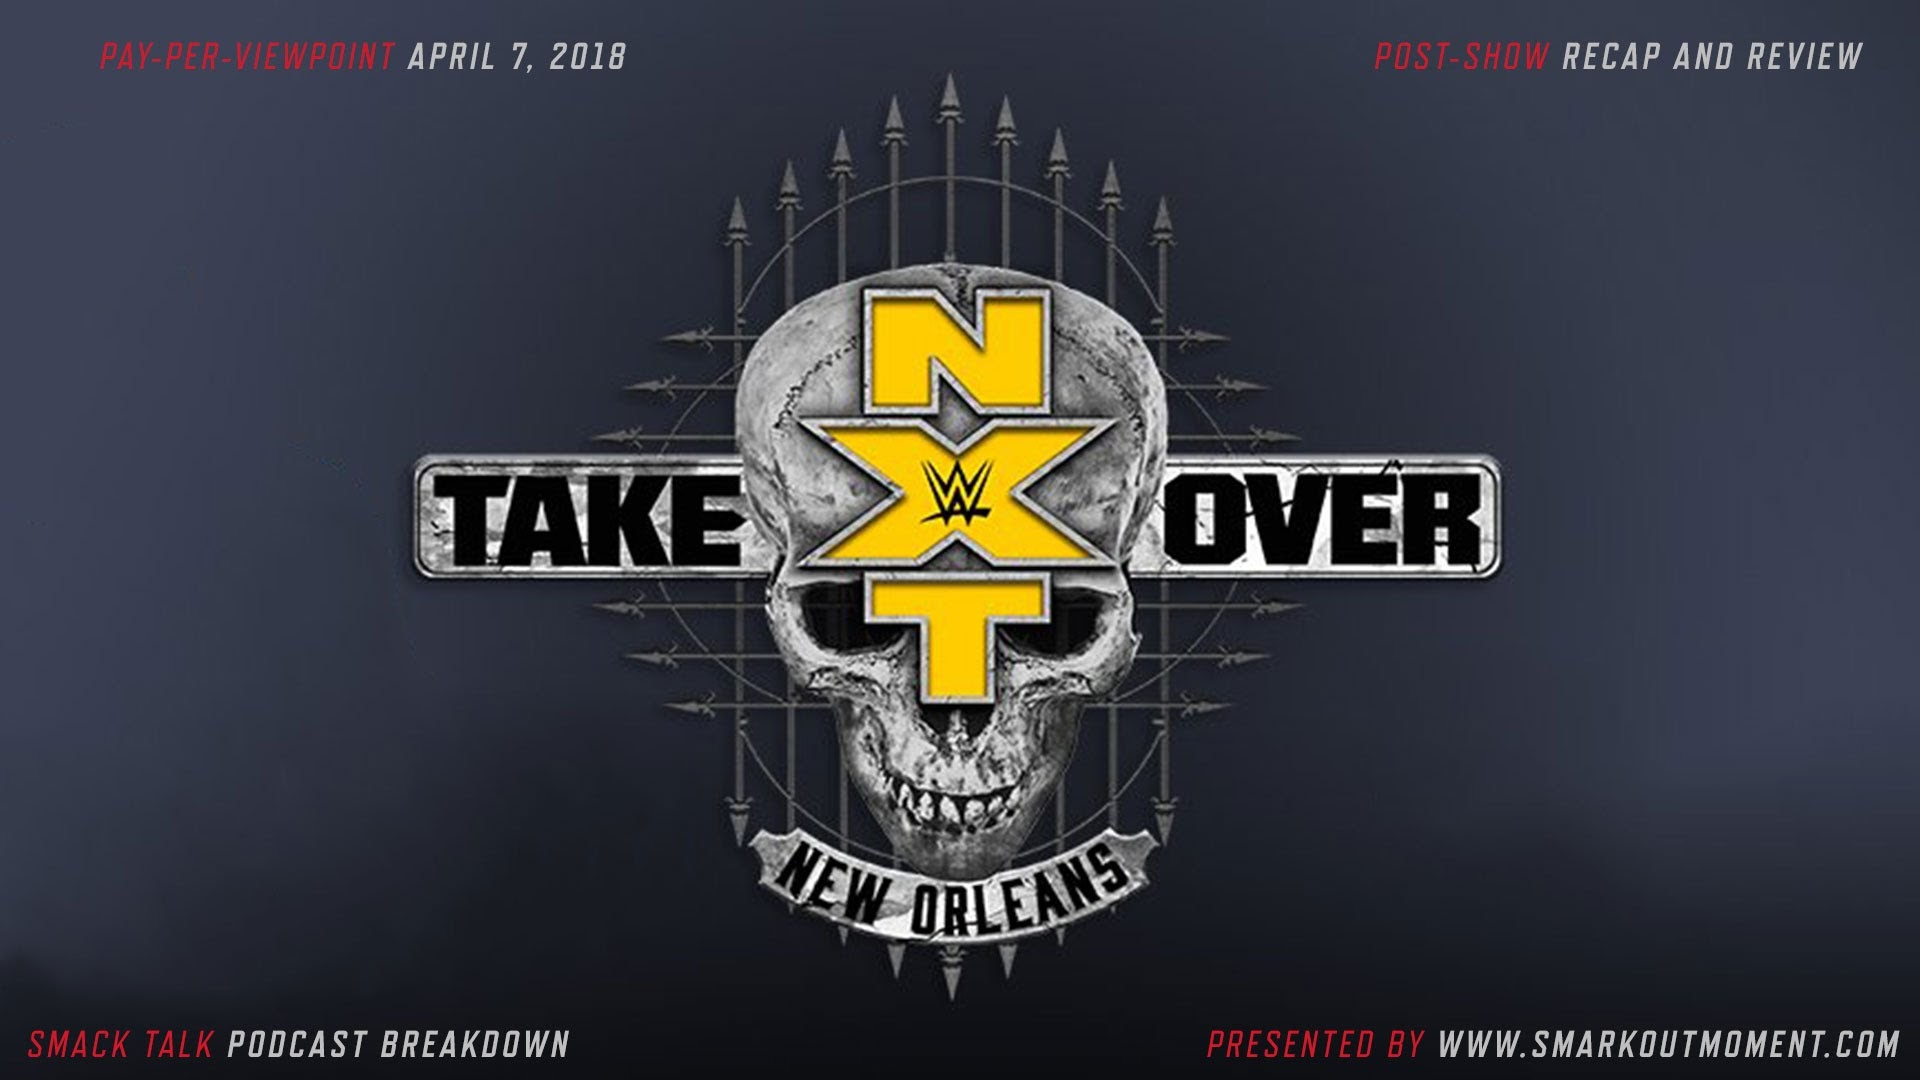 WWE NXT TakeOver: New Orleans Recap and Review Podcast